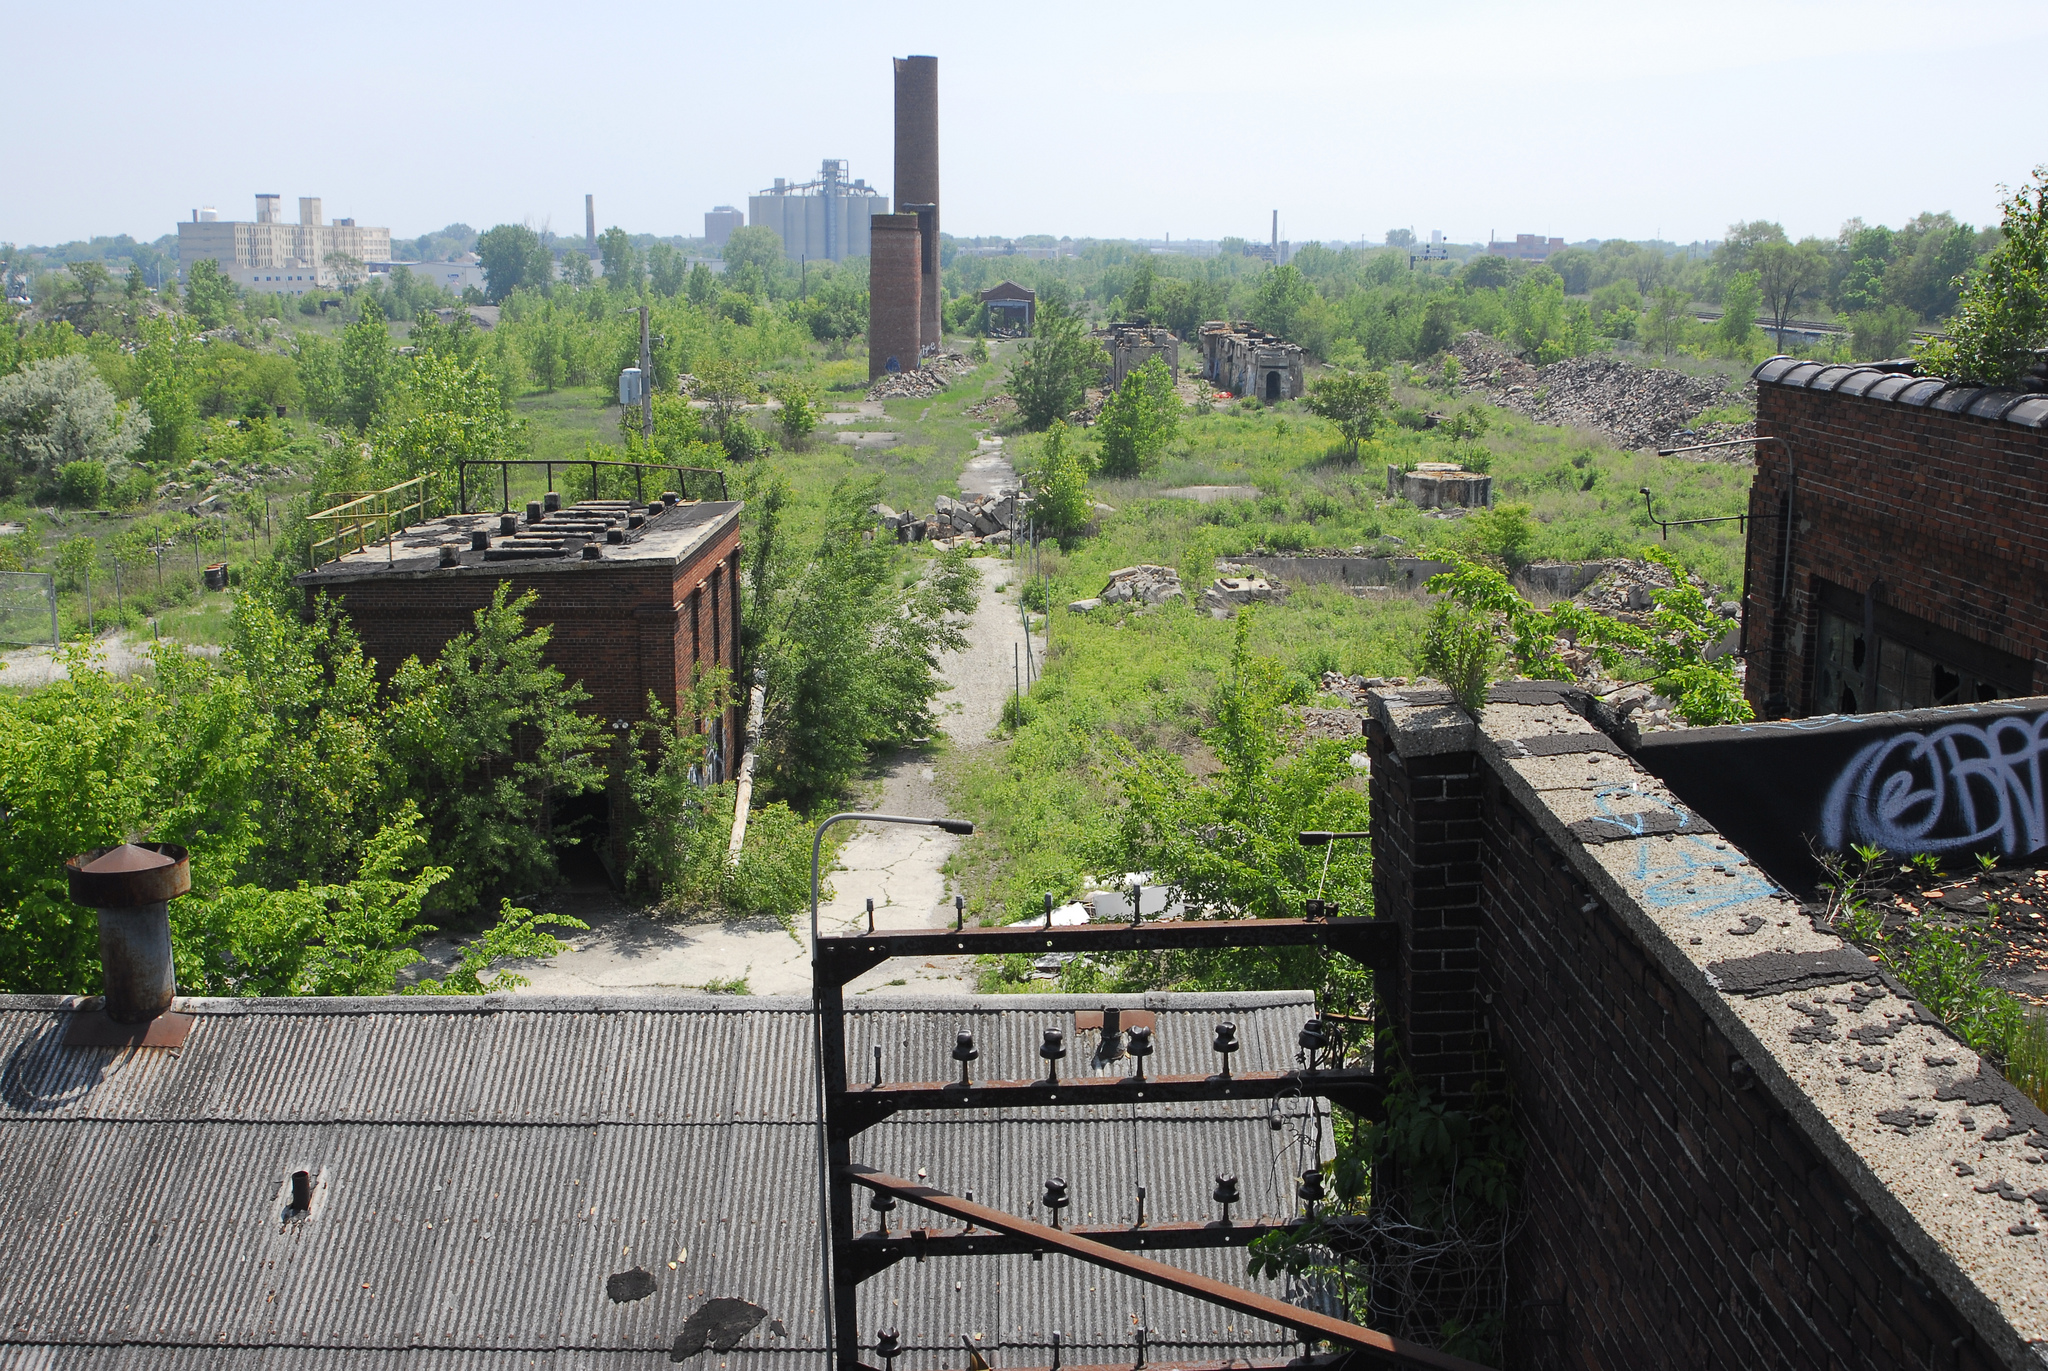 <table class=&quot;lightbox&quot;><tr><td colspan=2 class=&quot;lightbox-title&quot;>Ruins of Solvay Coke</td></tr><tr><td colspan=2 class=&quot;lightbox-caption&quot;>Detritus from Milwaukee's deindustrialization at the Solvay Coke site along inner harbor. Solvay Coke began operation in 1903 and produced coke, a high-carbon fuel similar to coal.</td></tr><tr><td colspan=2 class=&quot;lightbox-spacer&quot;></td></tr><tr class=&quot;lightbox-detail&quot;><td class=&quot;cell-title&quot;>Source: </td><td class=&quot;cell-value&quot;>From Flickr. Photograph by username Nitram242. CC BY-2.0.<br /><a href=&quot;https://www.flickr.com/photos/25165196@N08/7295511336/&quot; target=&quot;_blank&quot;>Flickr</a></td></tr><tr class=&quot;filler-row&quot;><td colspan=2>&nbsp;</td></tr></table>